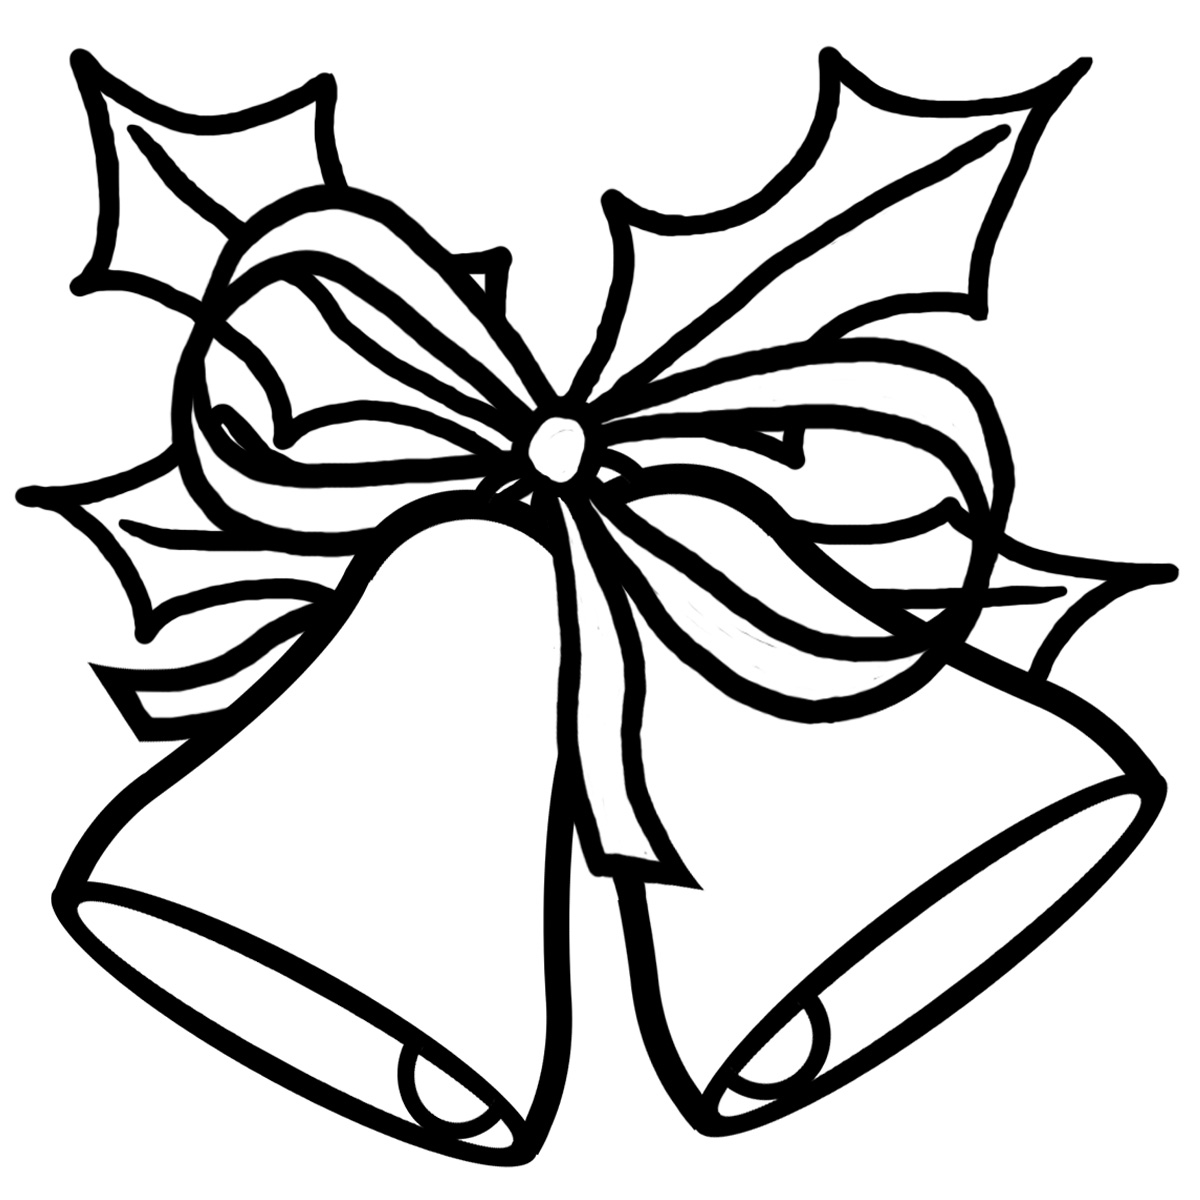 Christmas Tree Outline Clip Art Painting Clip Art Black And White ...